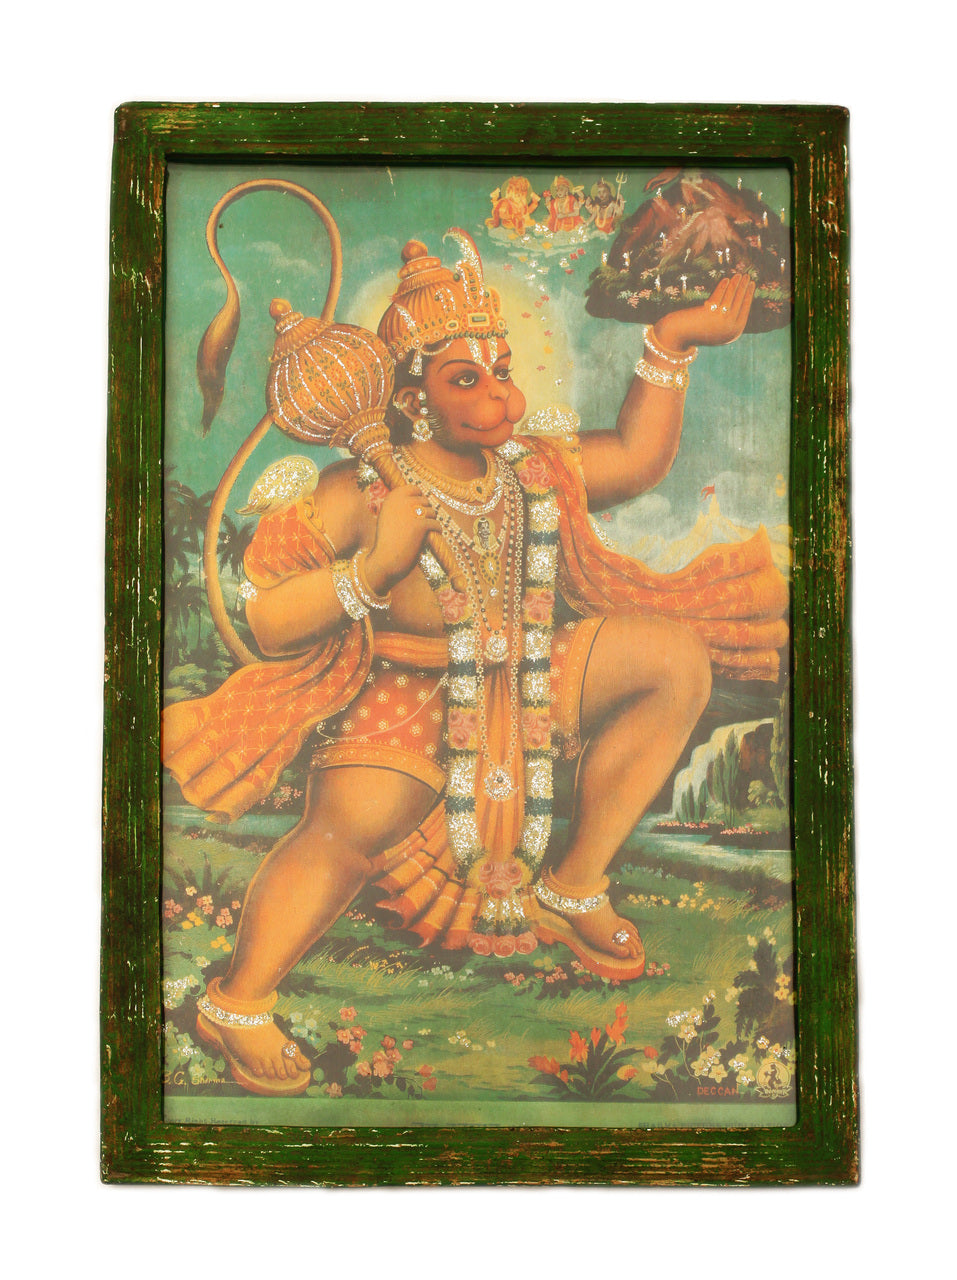 Hanuman the Hindu Monkey God that Defeats Evil Spirits, Fabulous Hand-Glittered Vivid Reproduction of a Painting